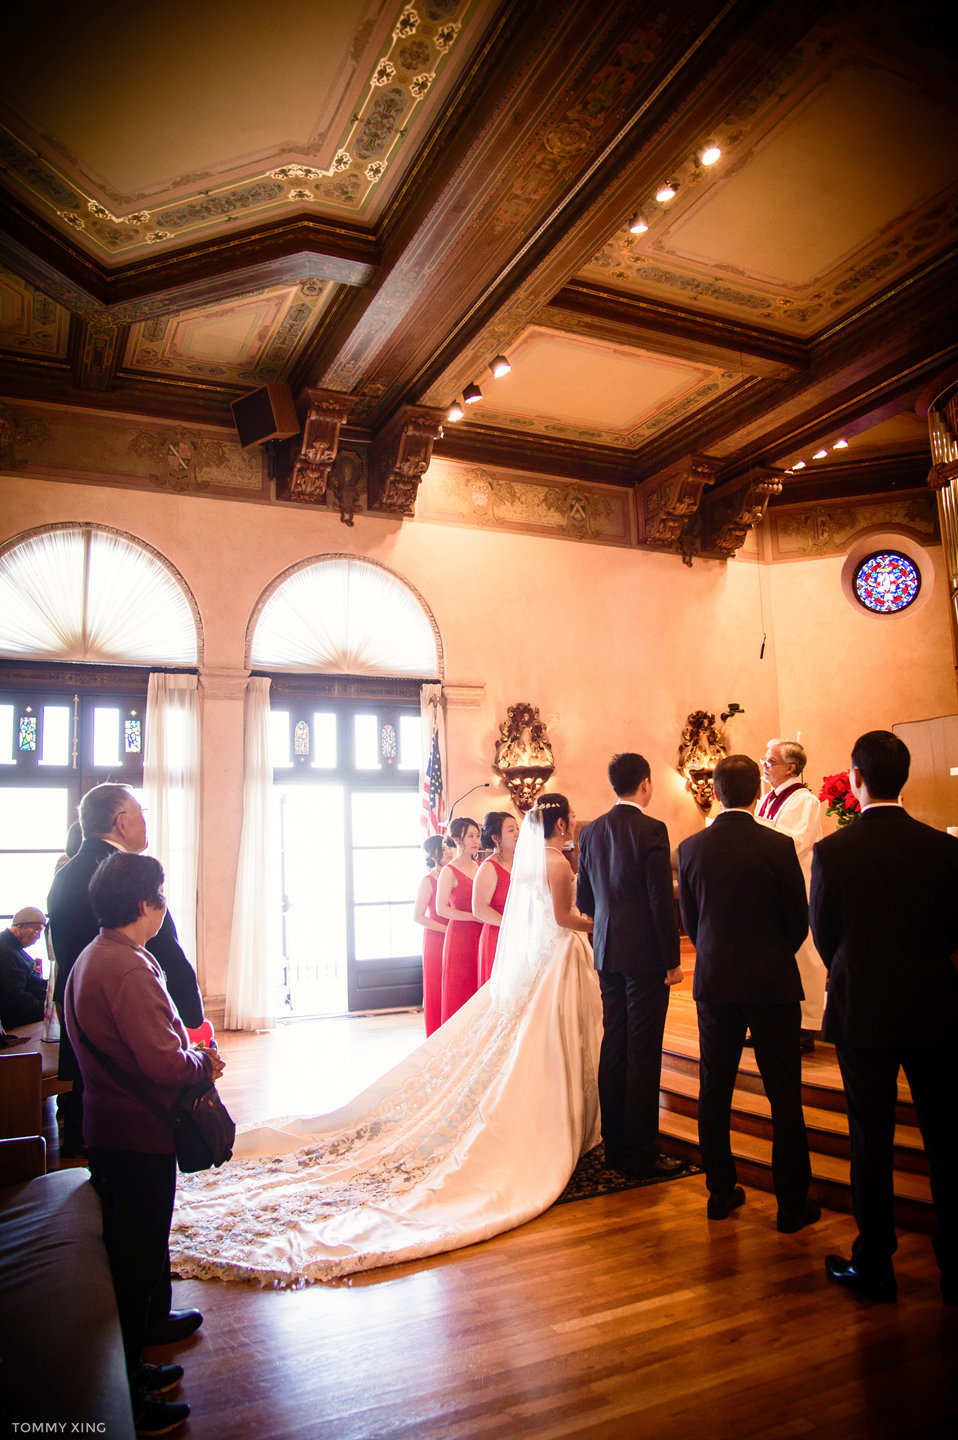 Los Angeles Wedding Photography Neighborhood Church Ranho Palos Verdes  Tommy Xing Photography 洛杉矶旧金山婚礼婚纱照摄影师085.jpg